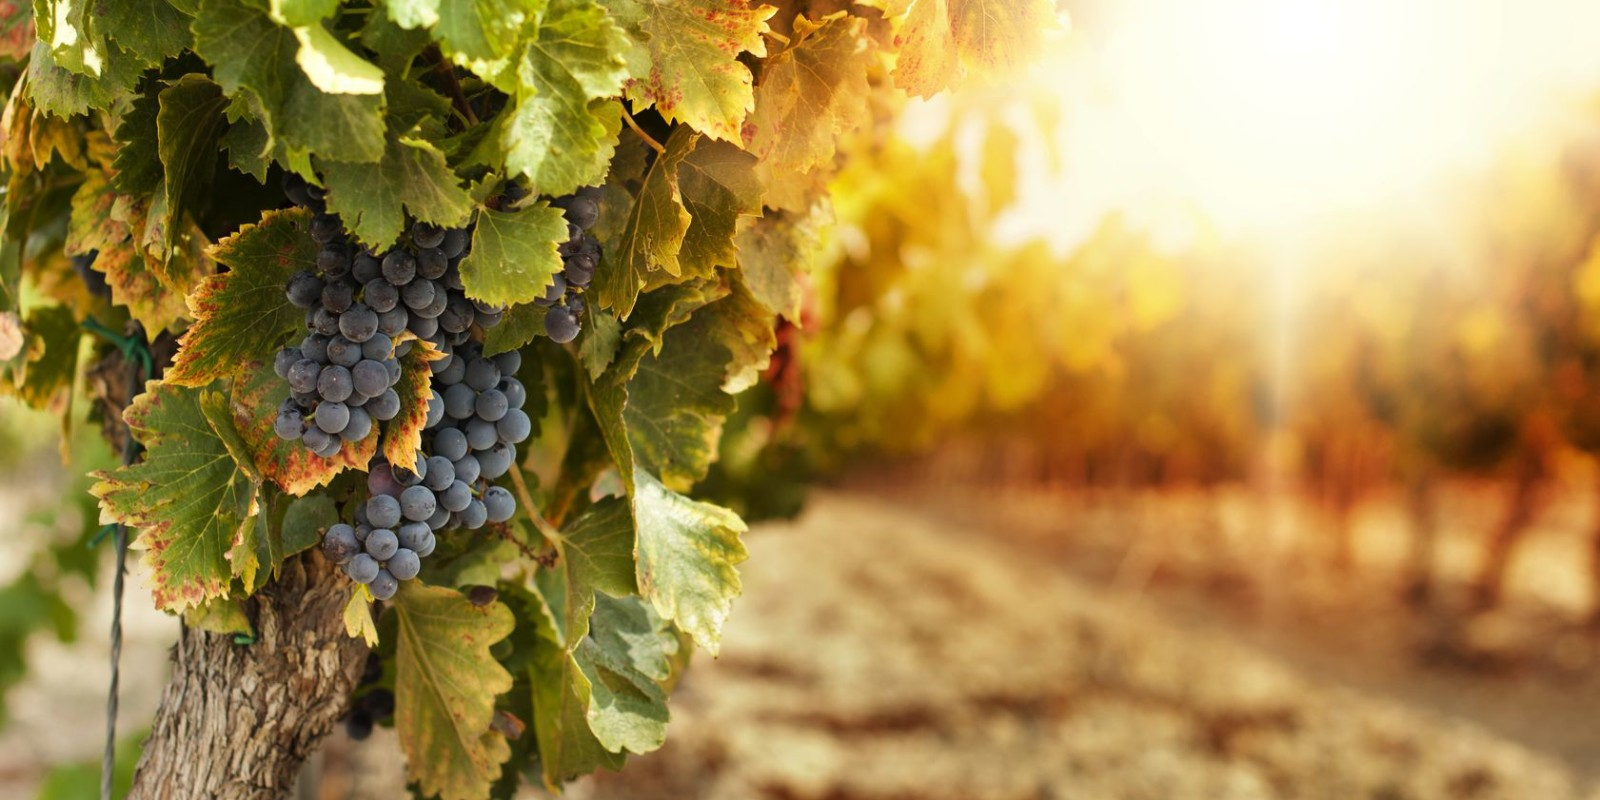 So You Want to Buy a Vineyard: Pre-Purchase Checklist